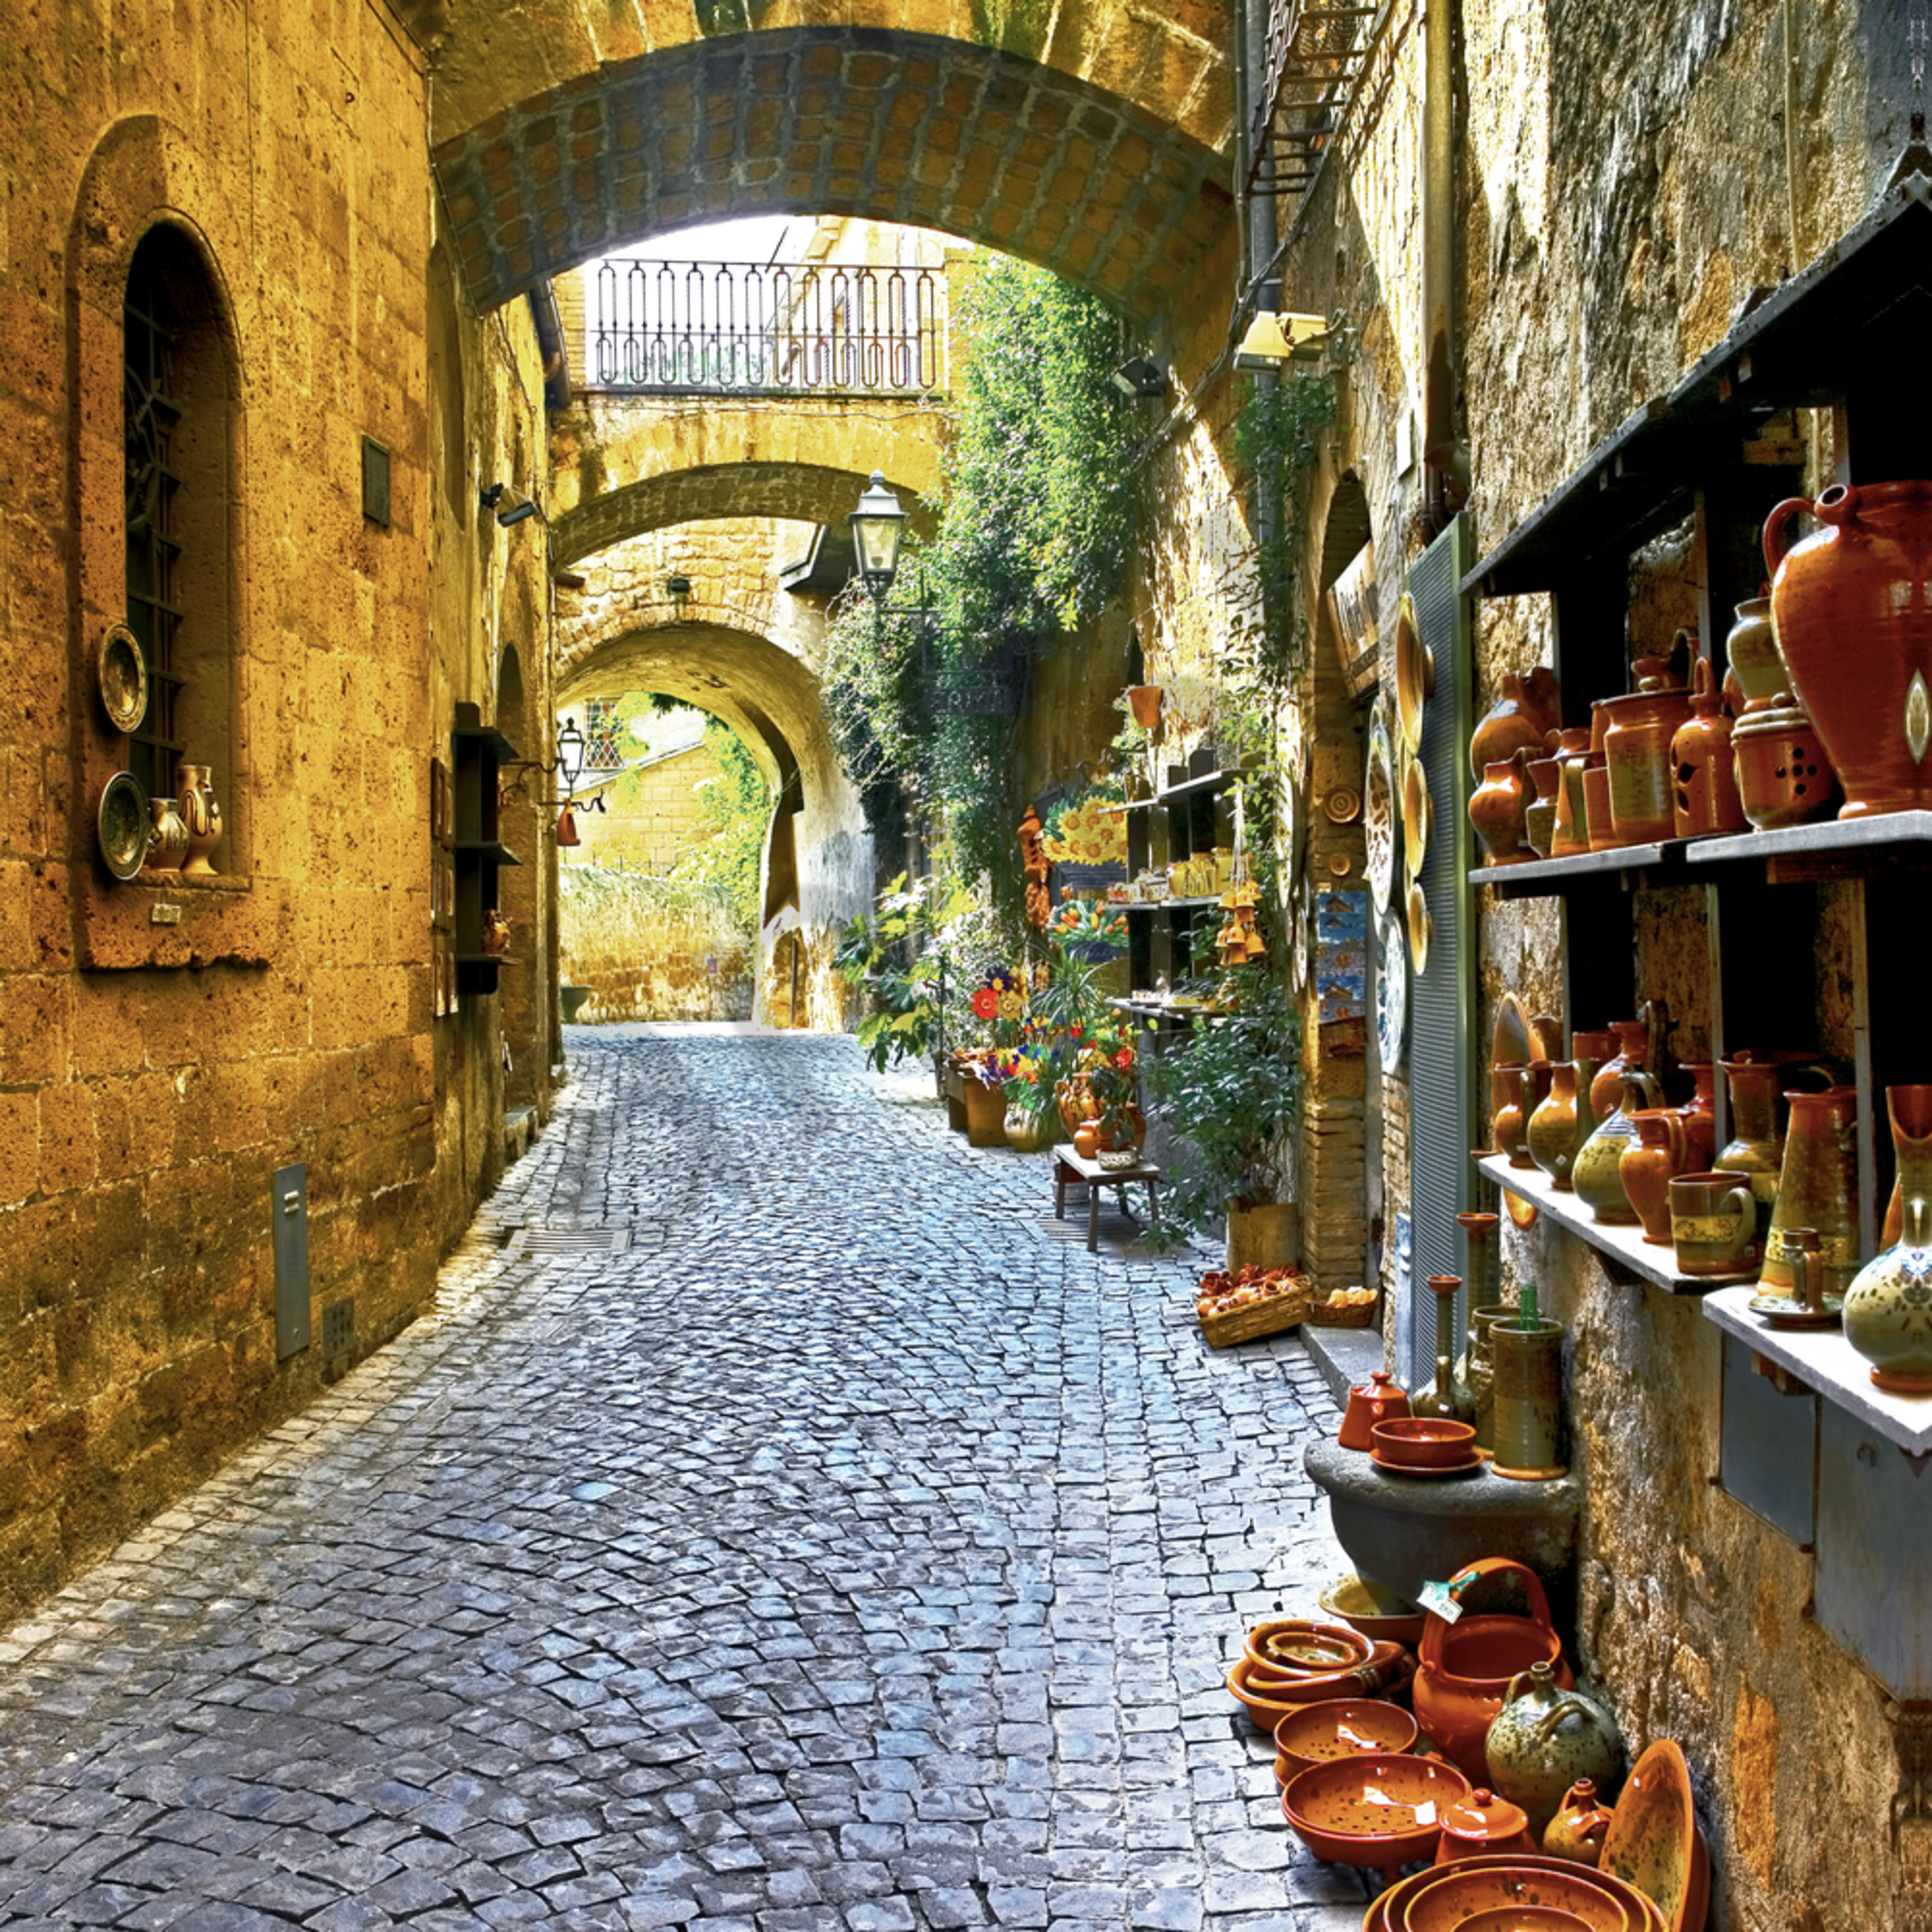 Double arch aka triple arches and alleyway in orvieto itaytif j1pxbn